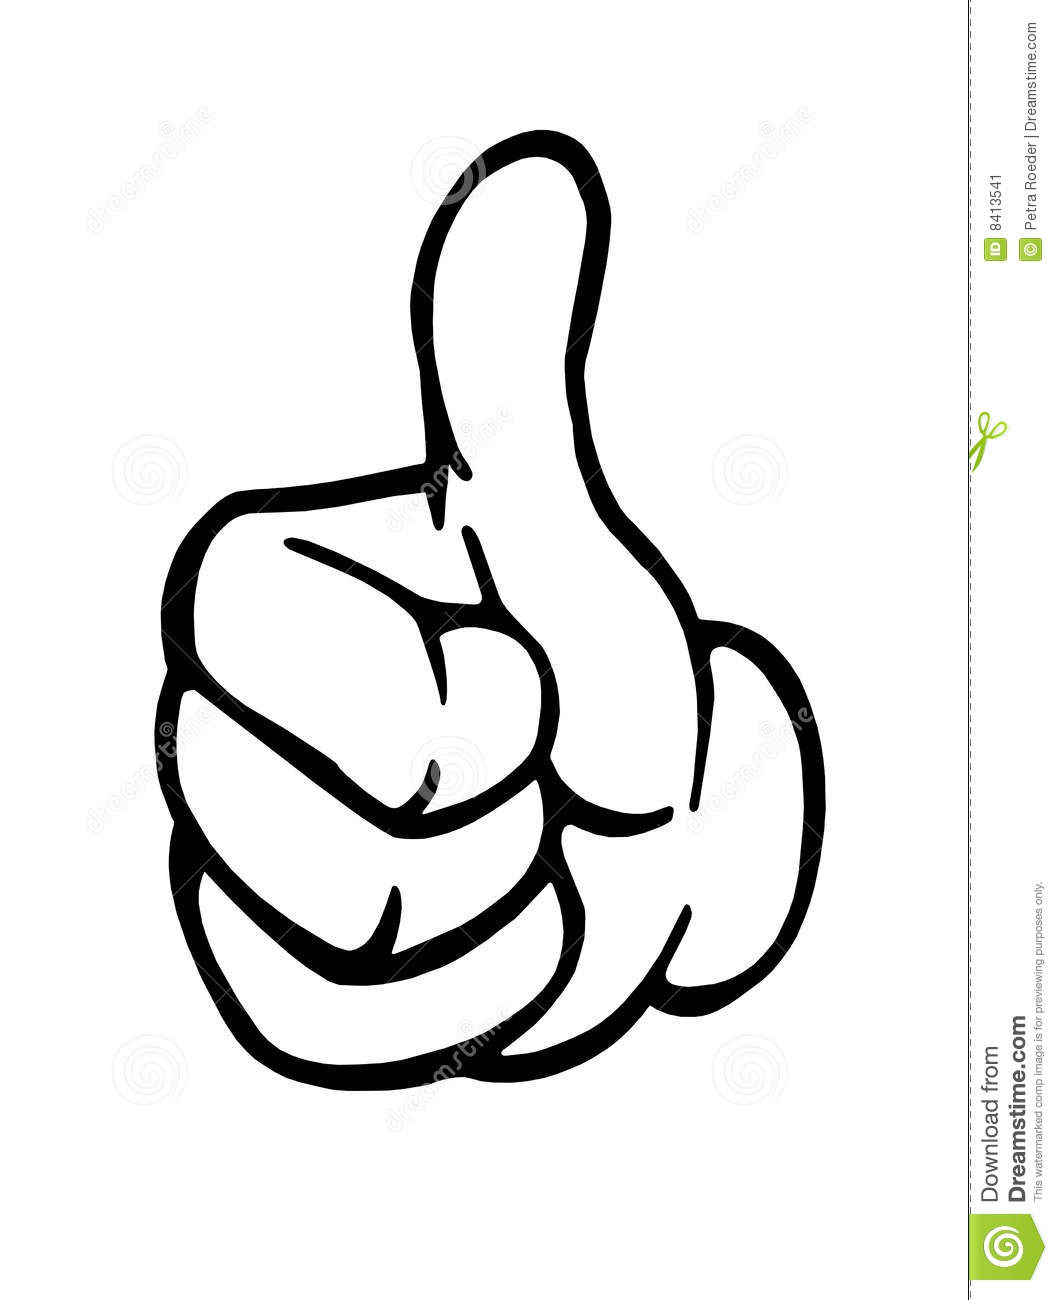 1058x1300 Thumbs Up Sign Clipart